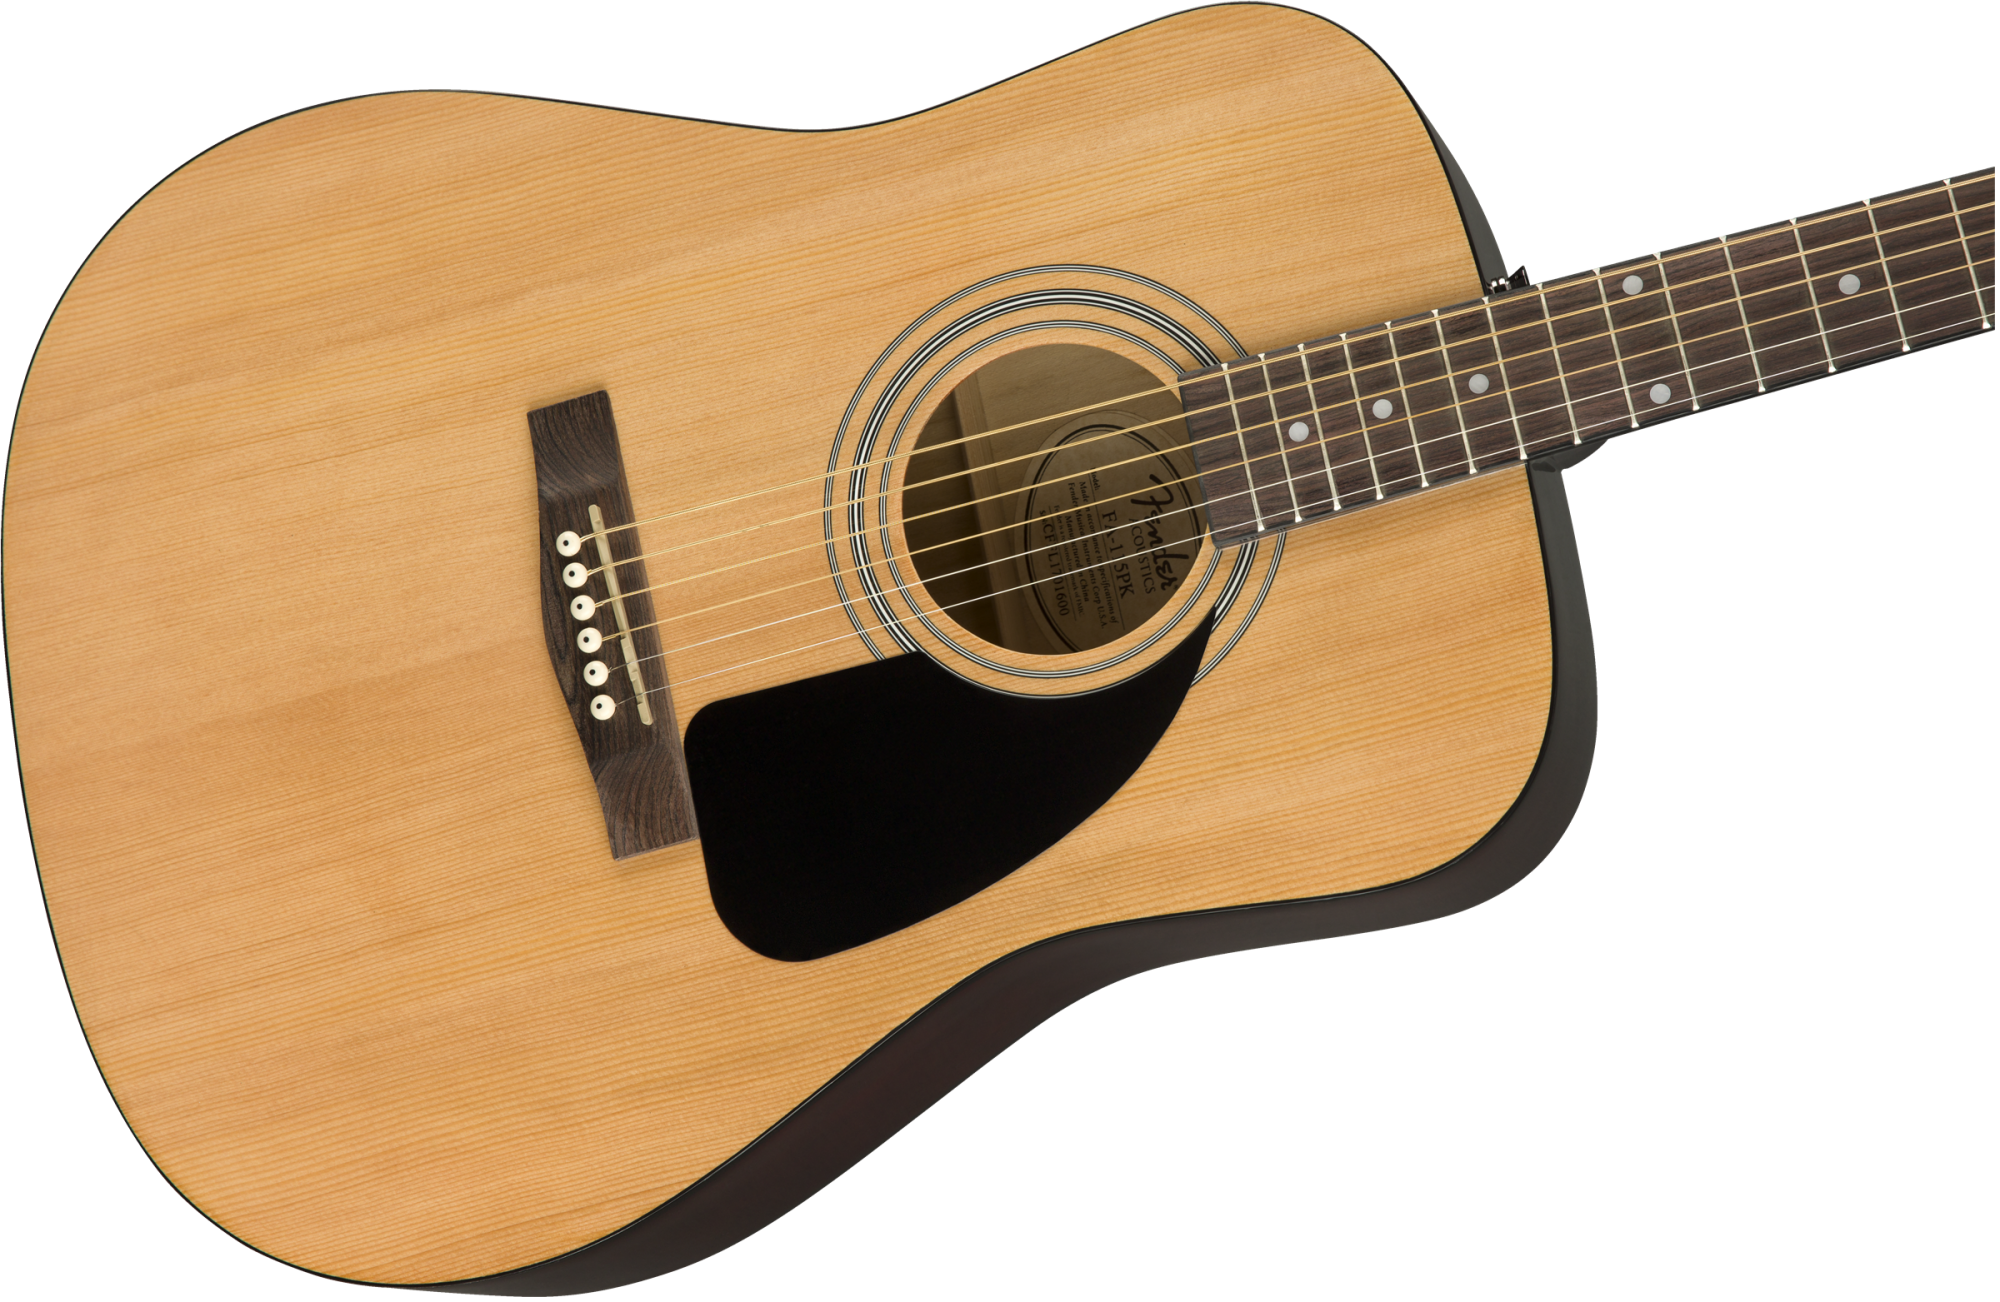 Fender FA-115 Dreadnought Acoustic Guitar Package w/ Bag, Strap, Picks, Strings and 3-Months of Fender Play